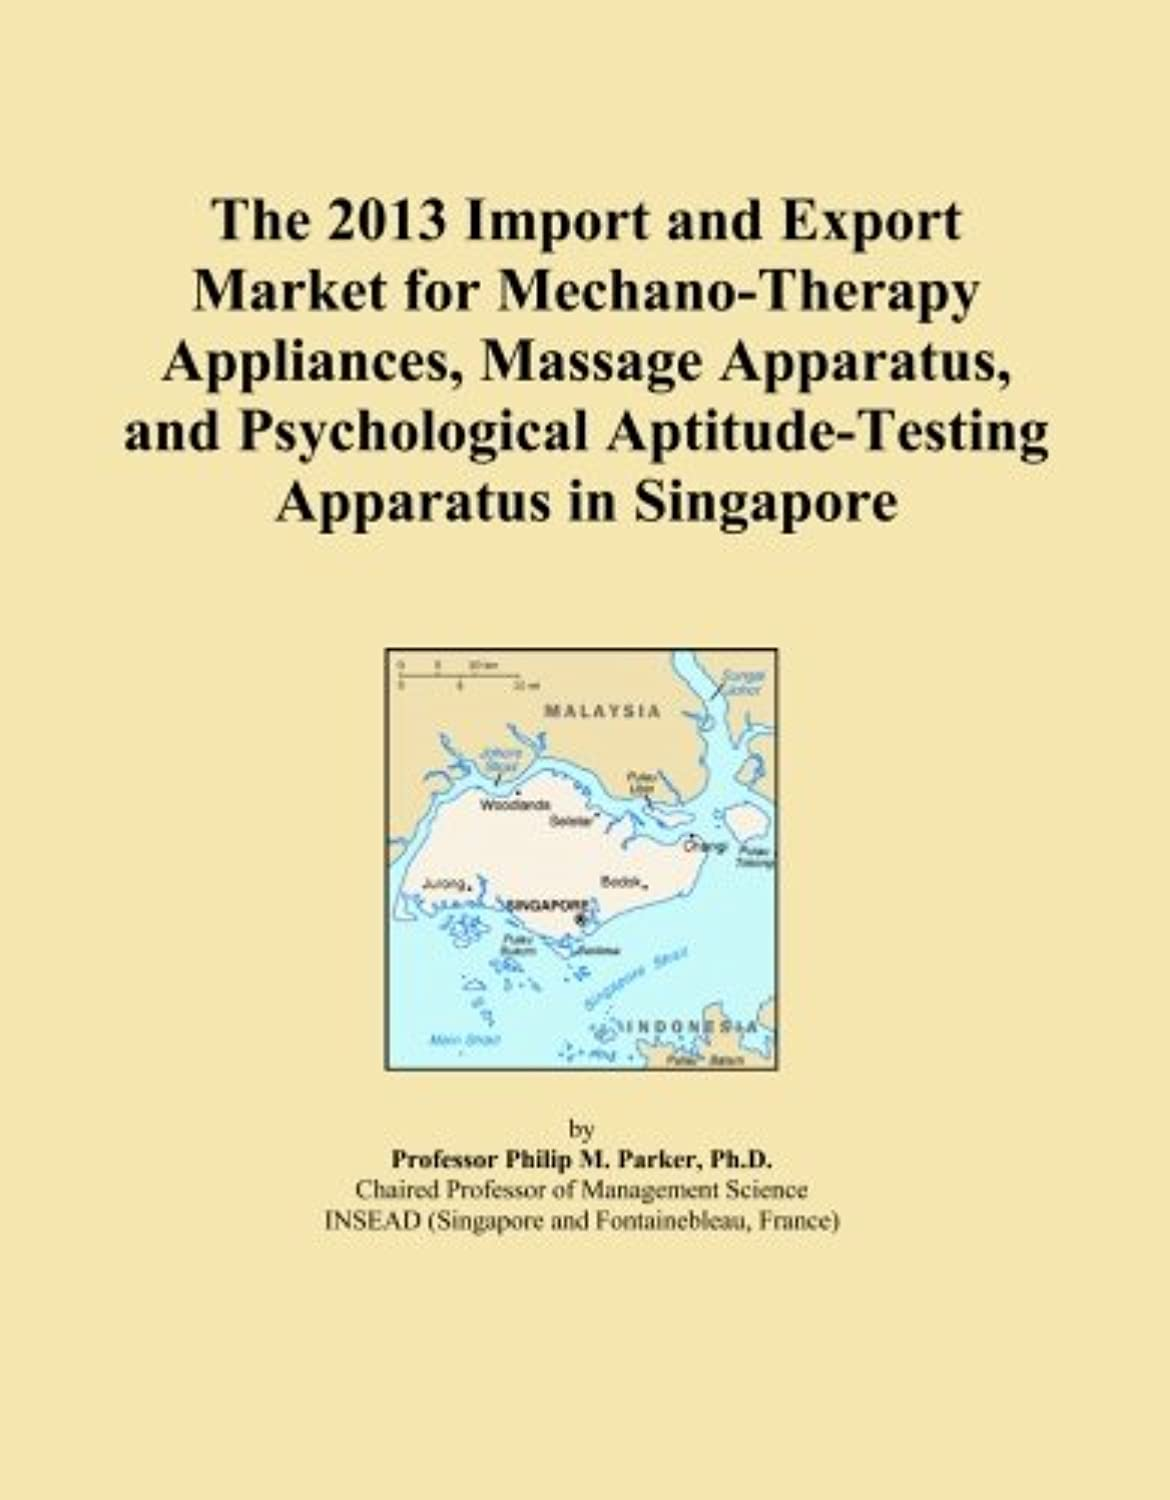 The 2013 Import and Export Market for Mechano-Therapy Appliances, Massage Apparatus, and Psychological Aptitude-Testing Apparatus in Singapore